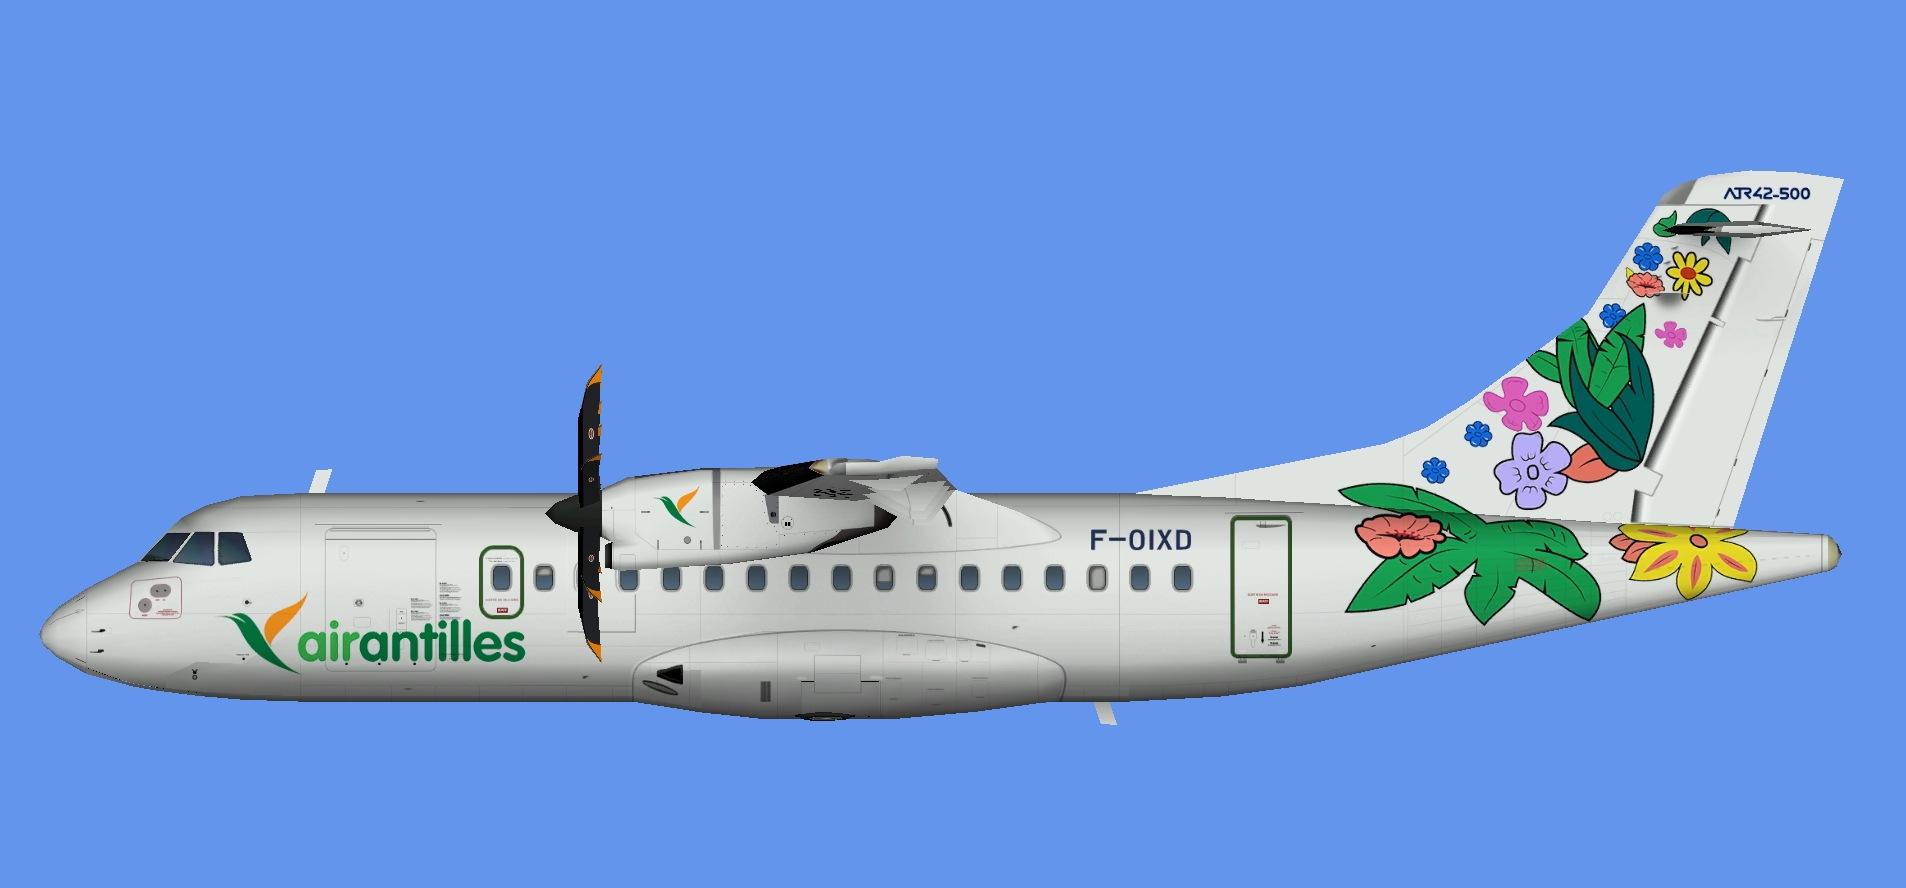 Air Antilles Express ATR 42-500